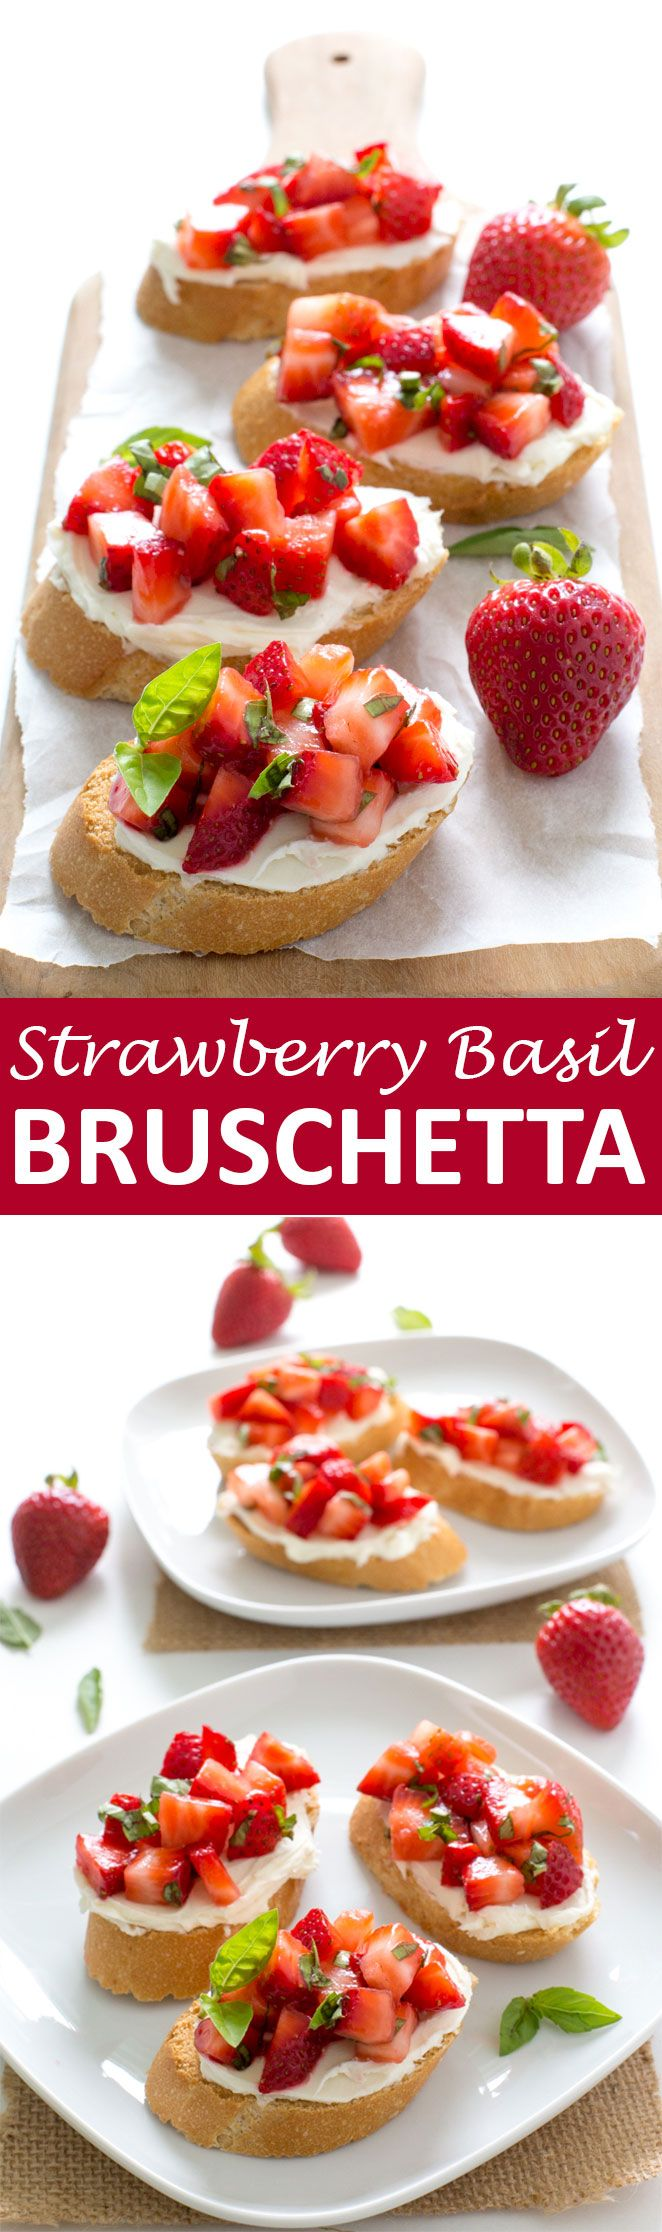 Strawberry Basil Bruschetta with creamy mascarpone cheese. A super easy appetizer with only 5 ingredients! Ready in less than 10 minutes! | chefsavvy.com #recipe #bruschetta #basil #strawberry